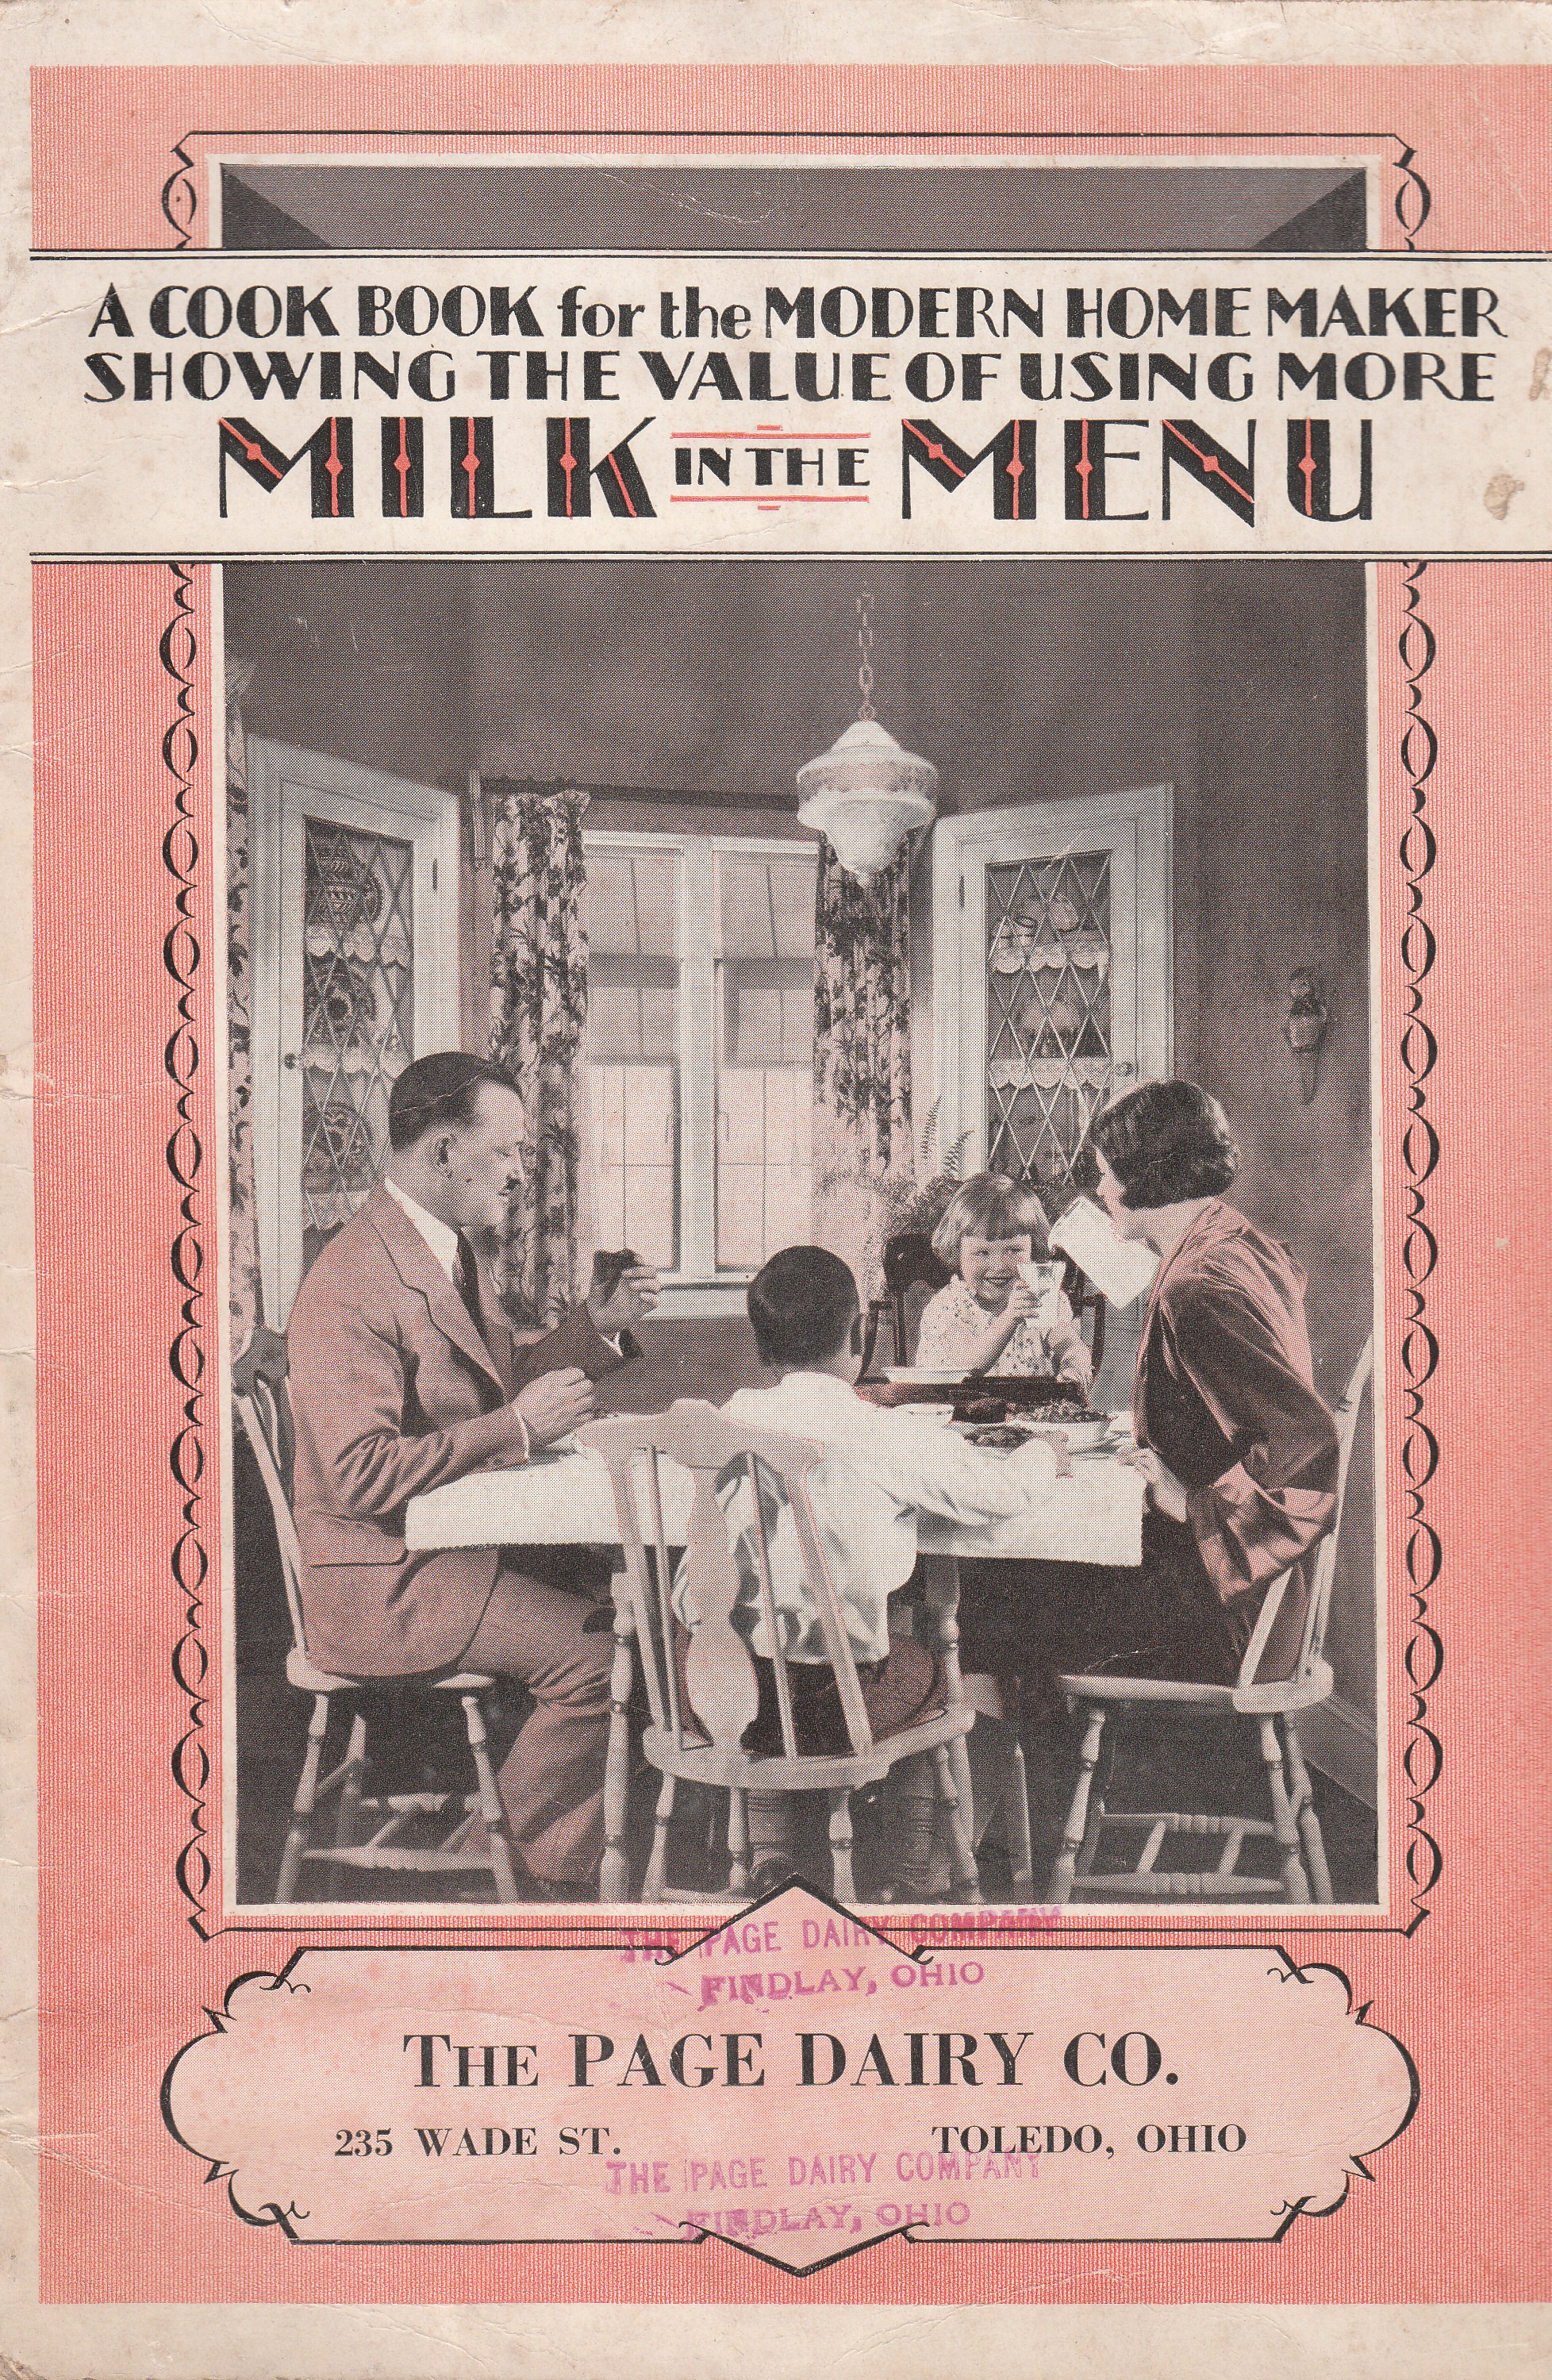 Cookbook for the Modern Home 1928